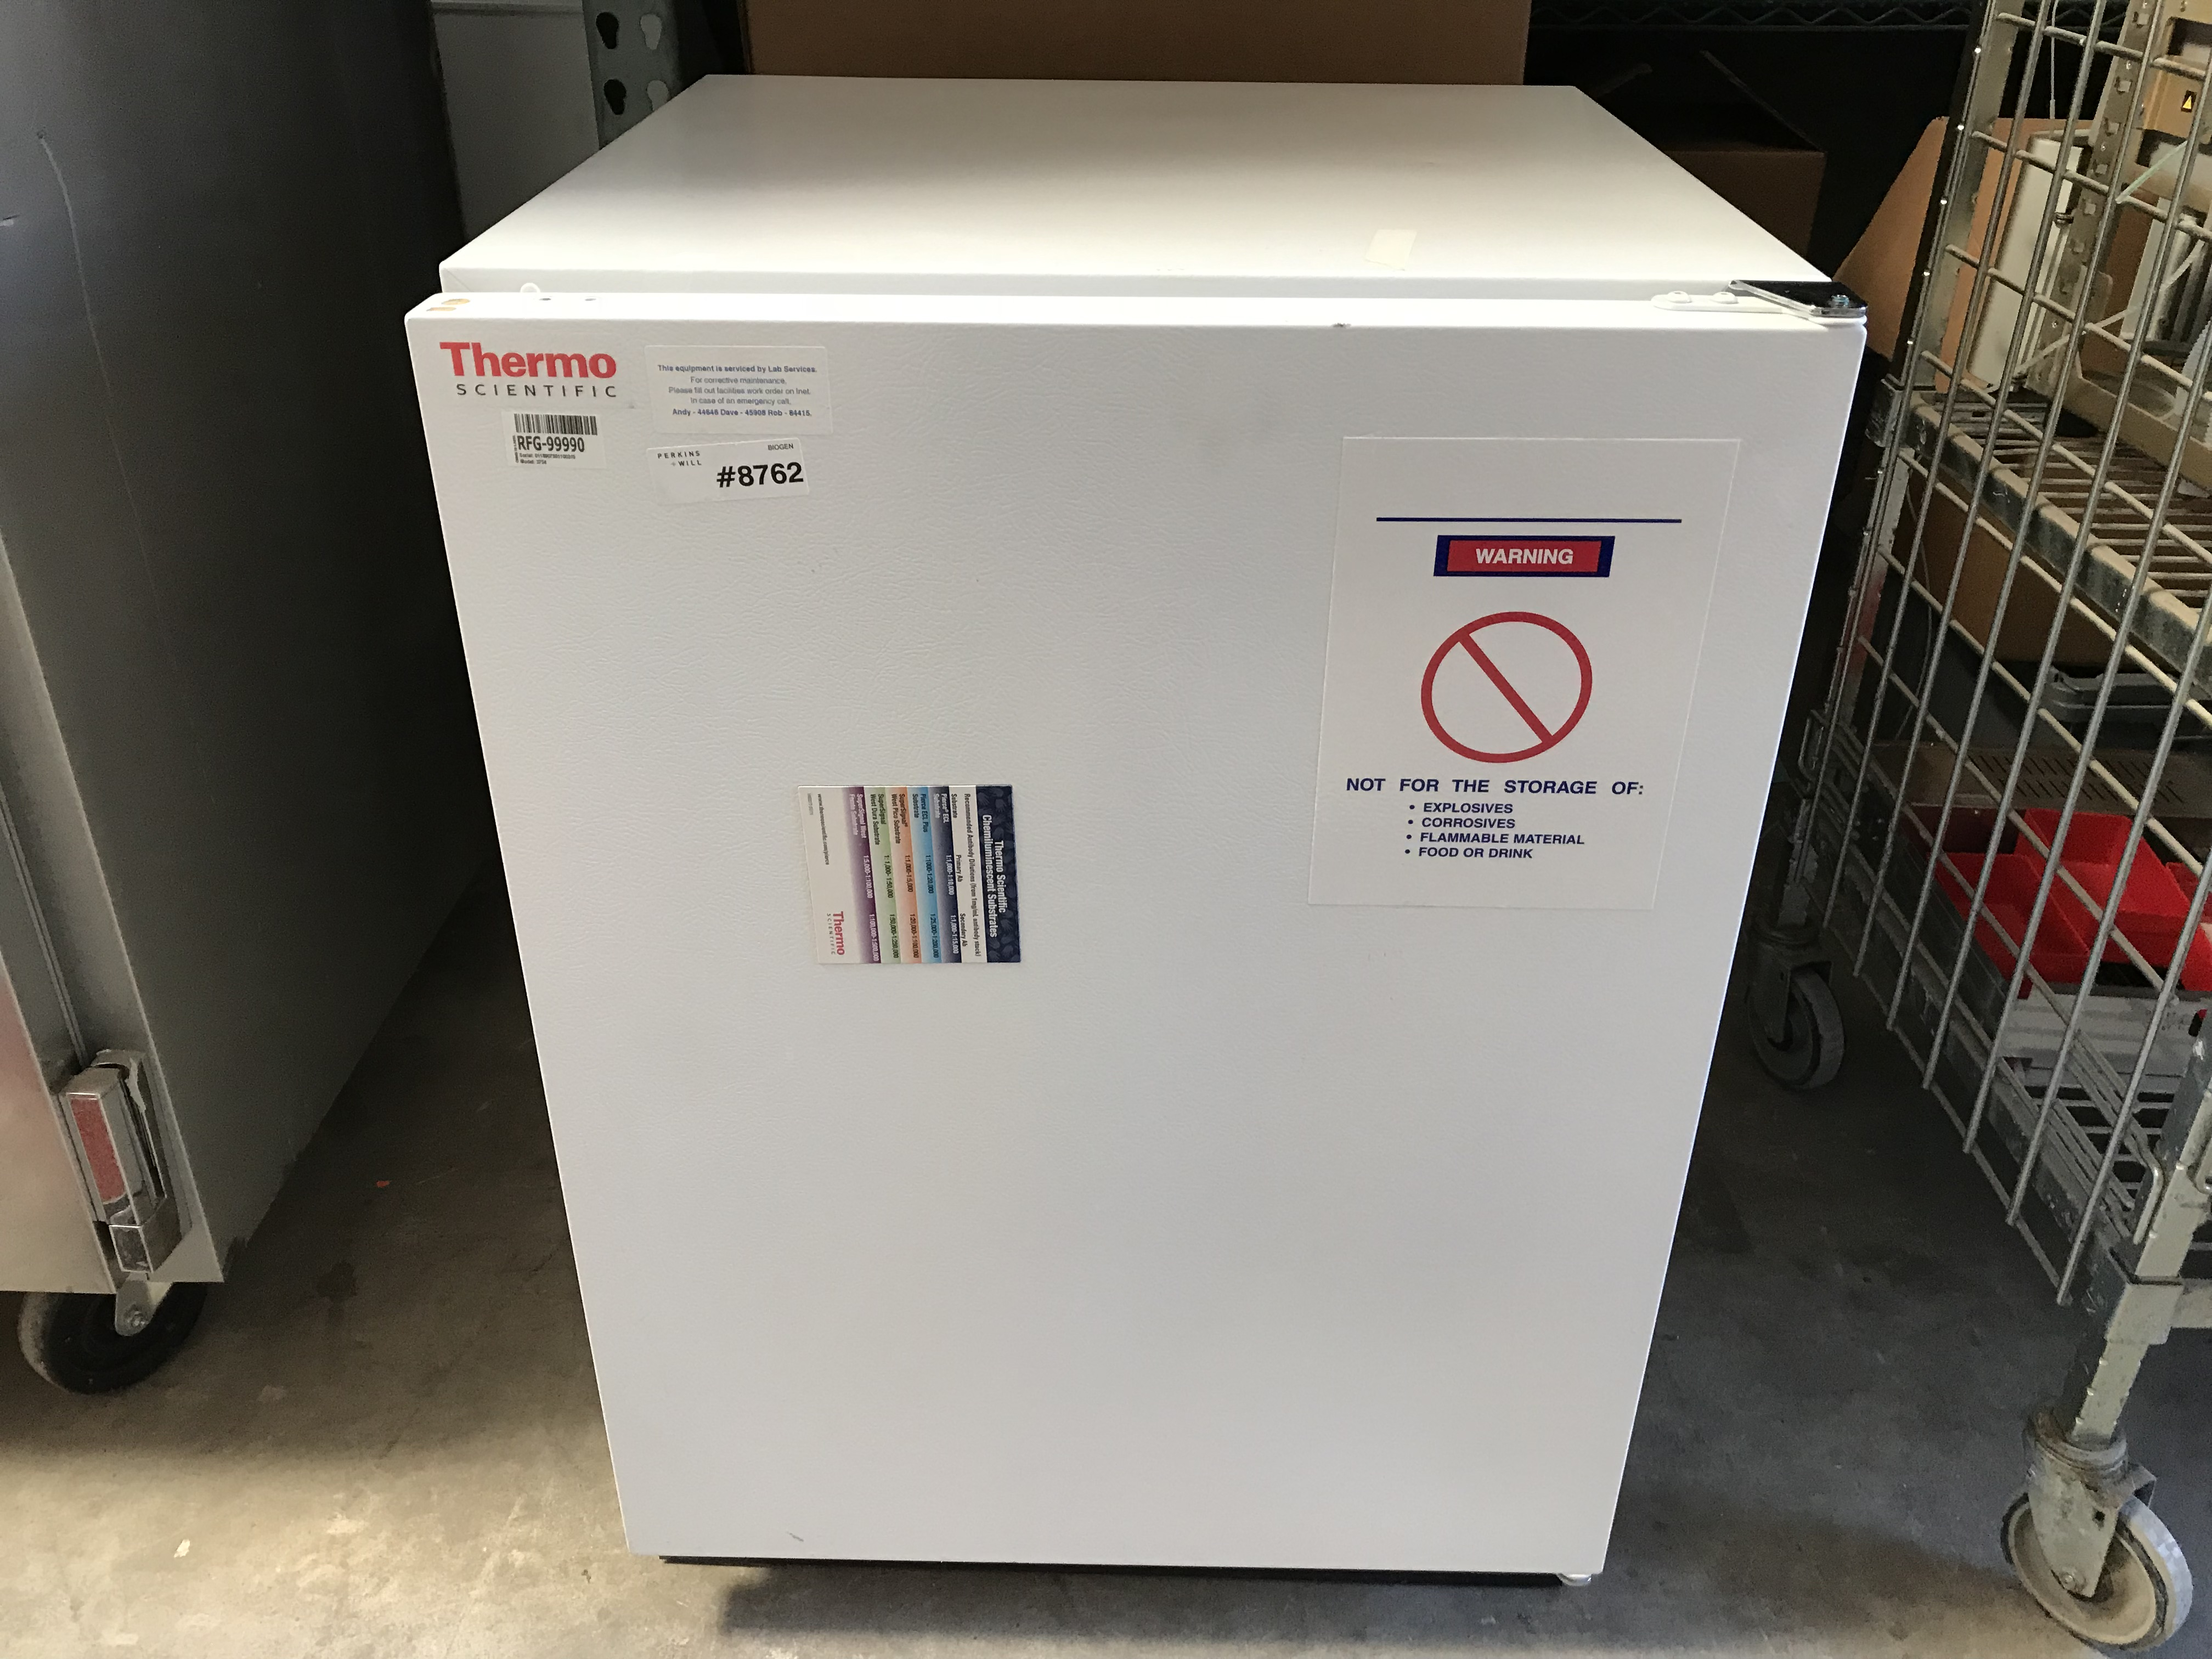 Thermo Scientific 3754 Undercounter Refrigerator